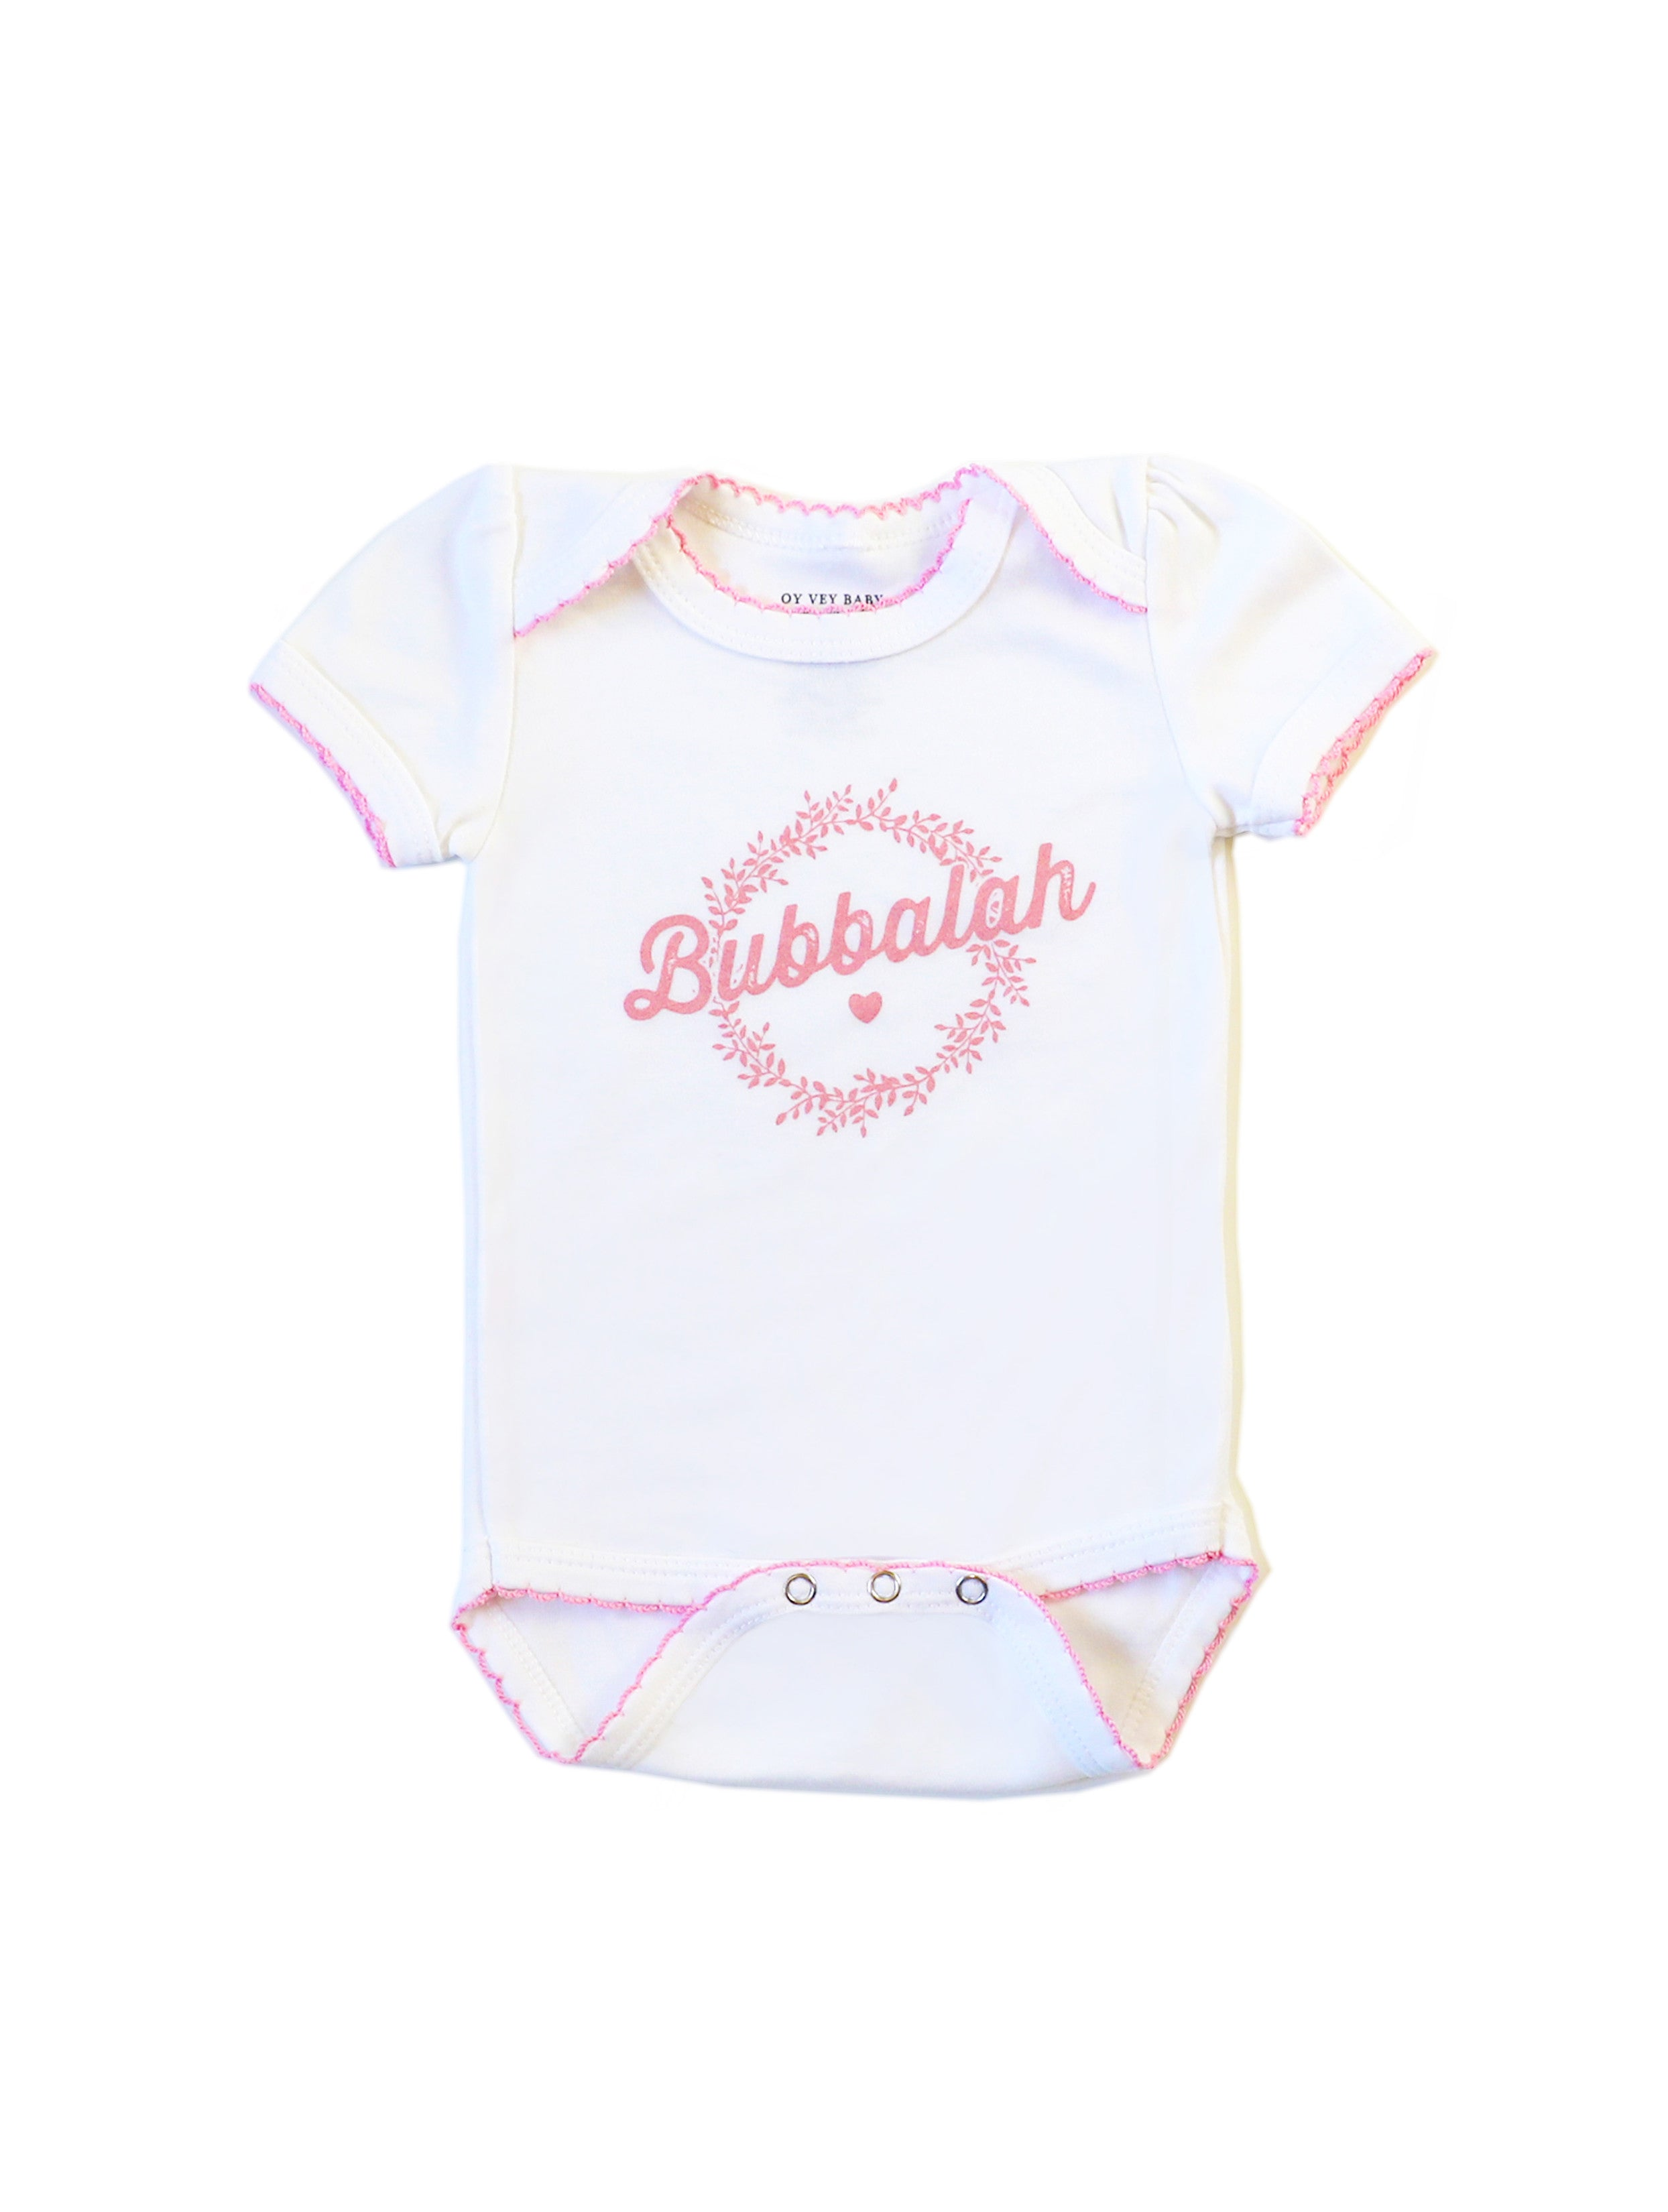 White Short-Sleeve Bubbalah Onesie with Rose Trim and Rose Ink